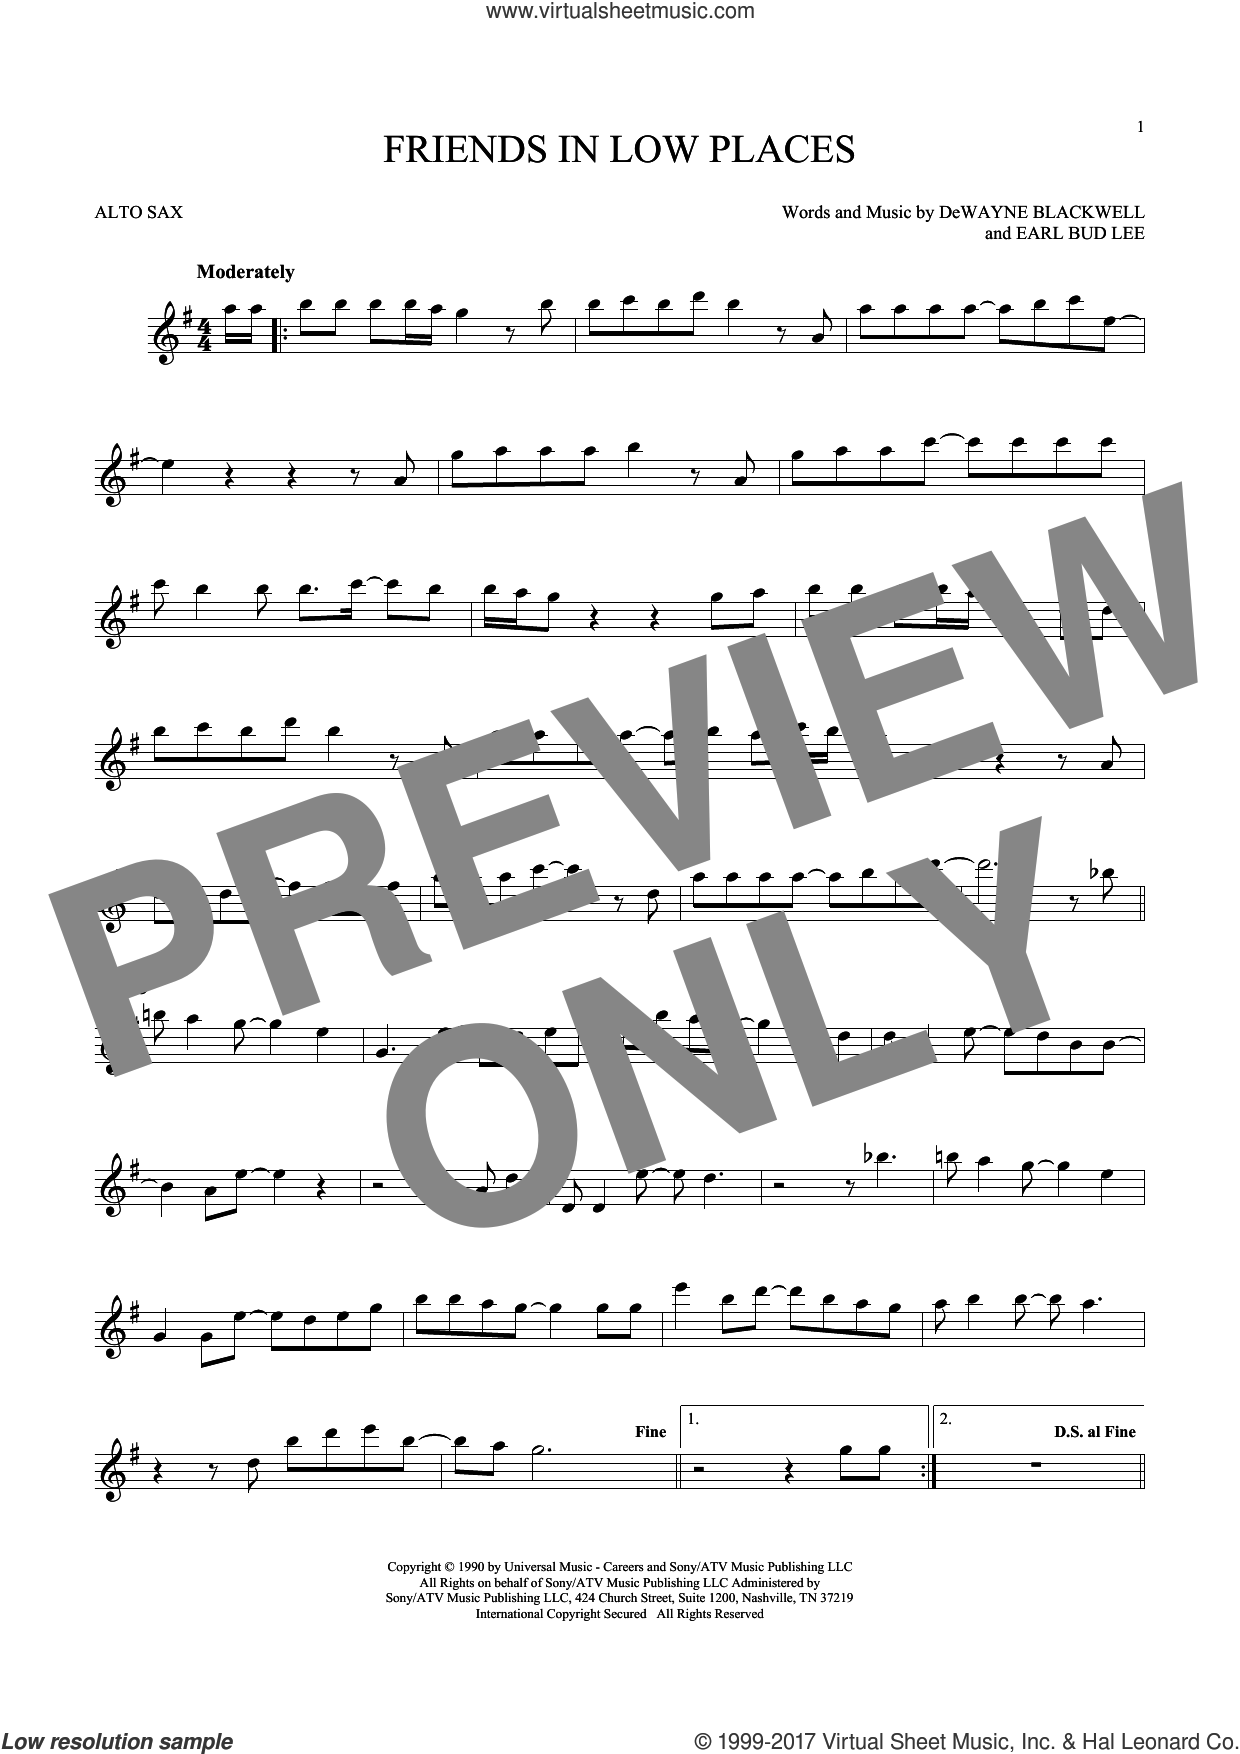 Friends In Low Places sheet music for alto saxophone solo ( Sax) by Garth Brooks, DeWayne Blackwell and Earl Bud Lee, intermediate alto saxophone ( Sax). Score Image Preview.